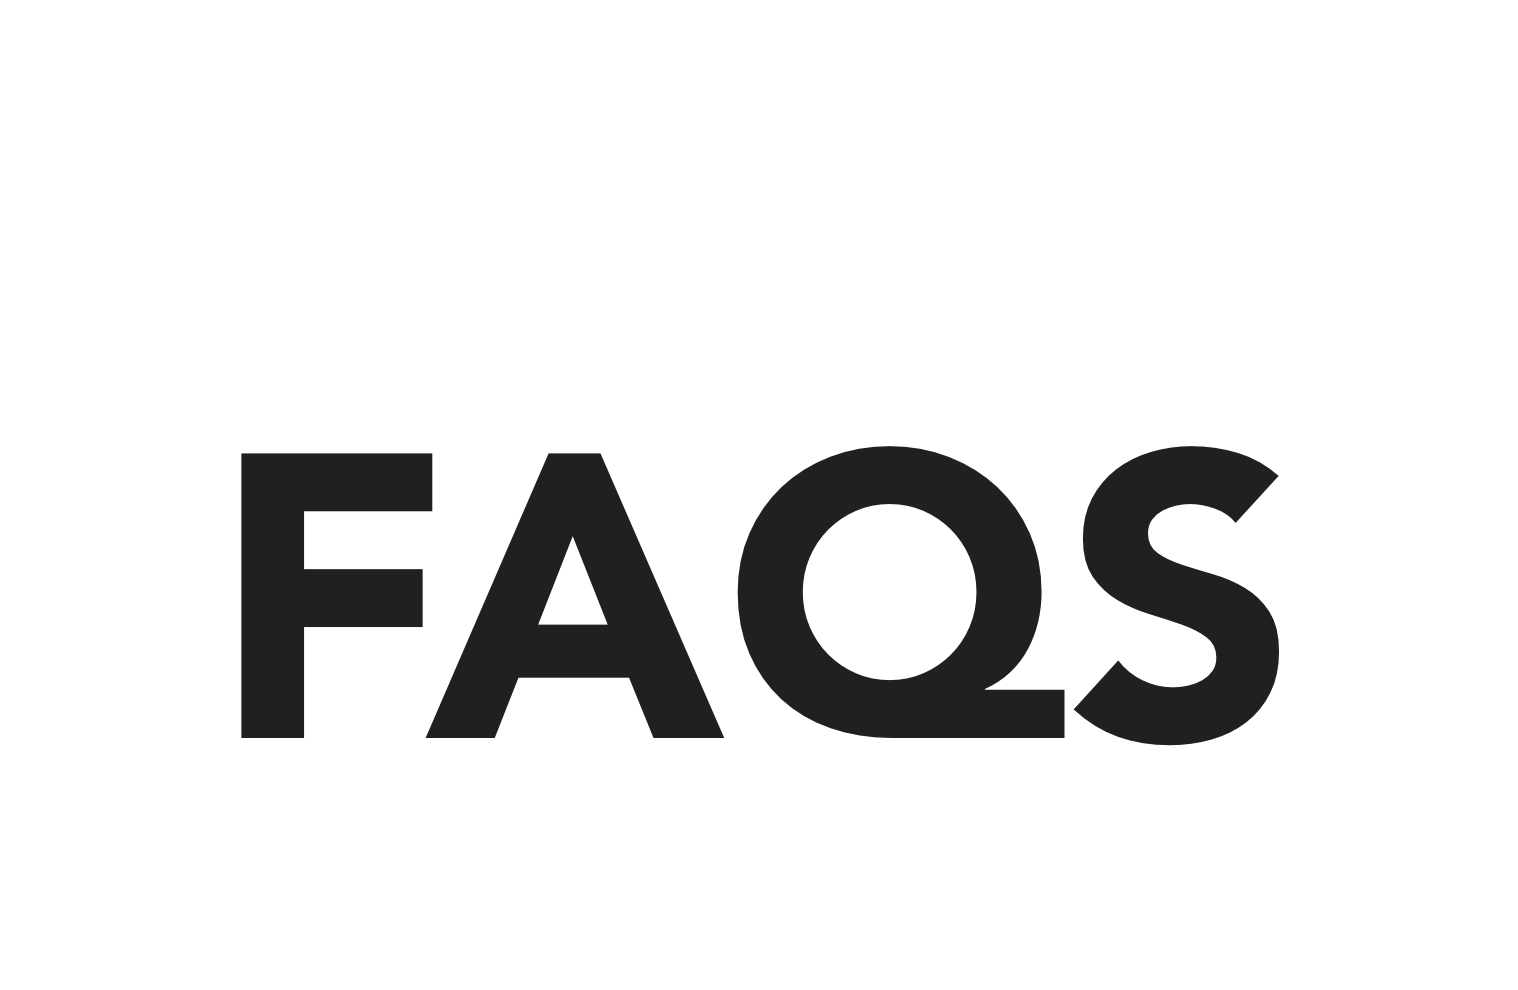 faqs text inside of octagon